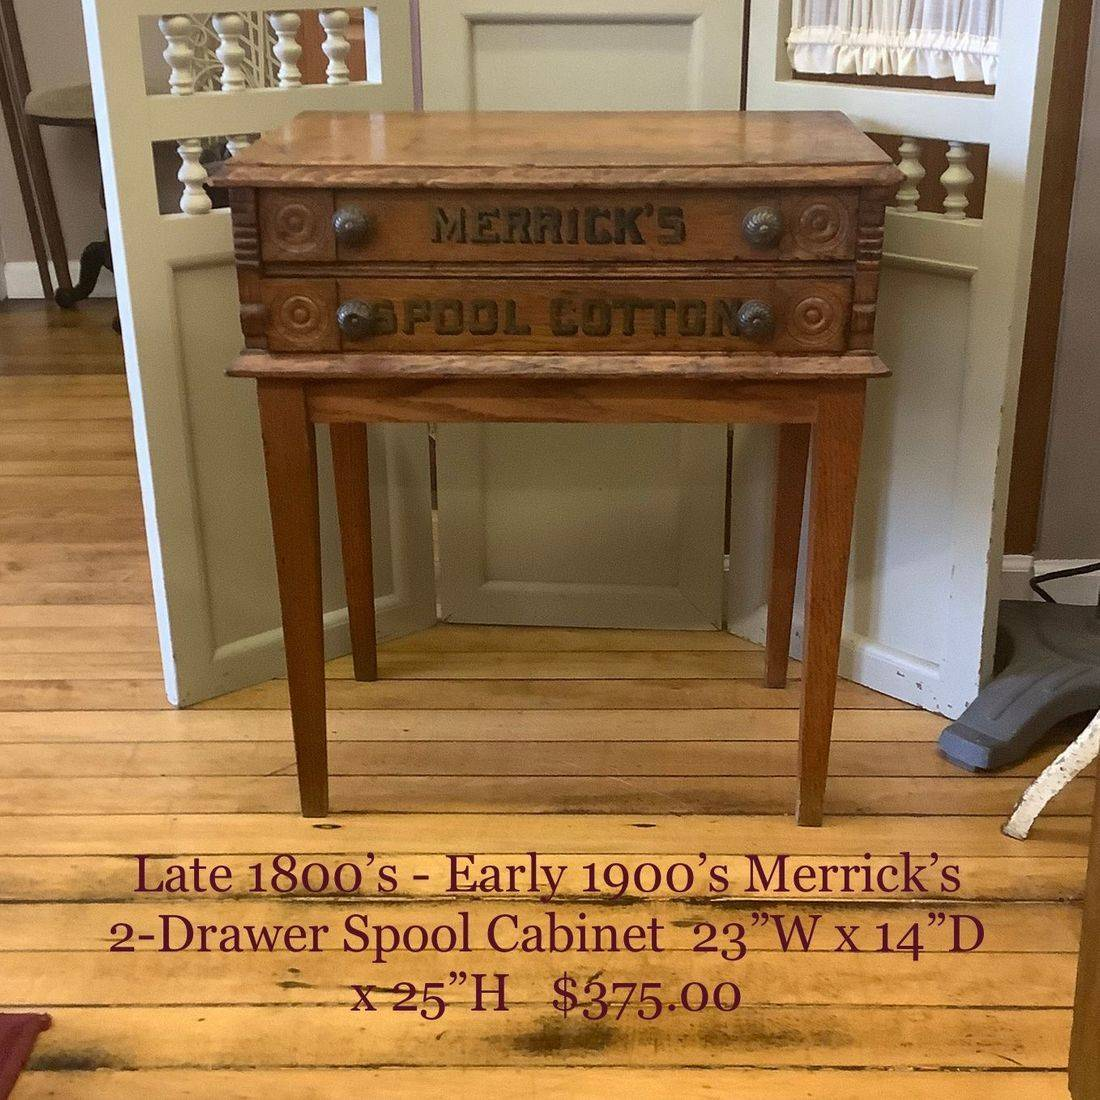 Late 1800's - Early 1900's Merrick's 2-Drawer Spool Cabinet    $375.00